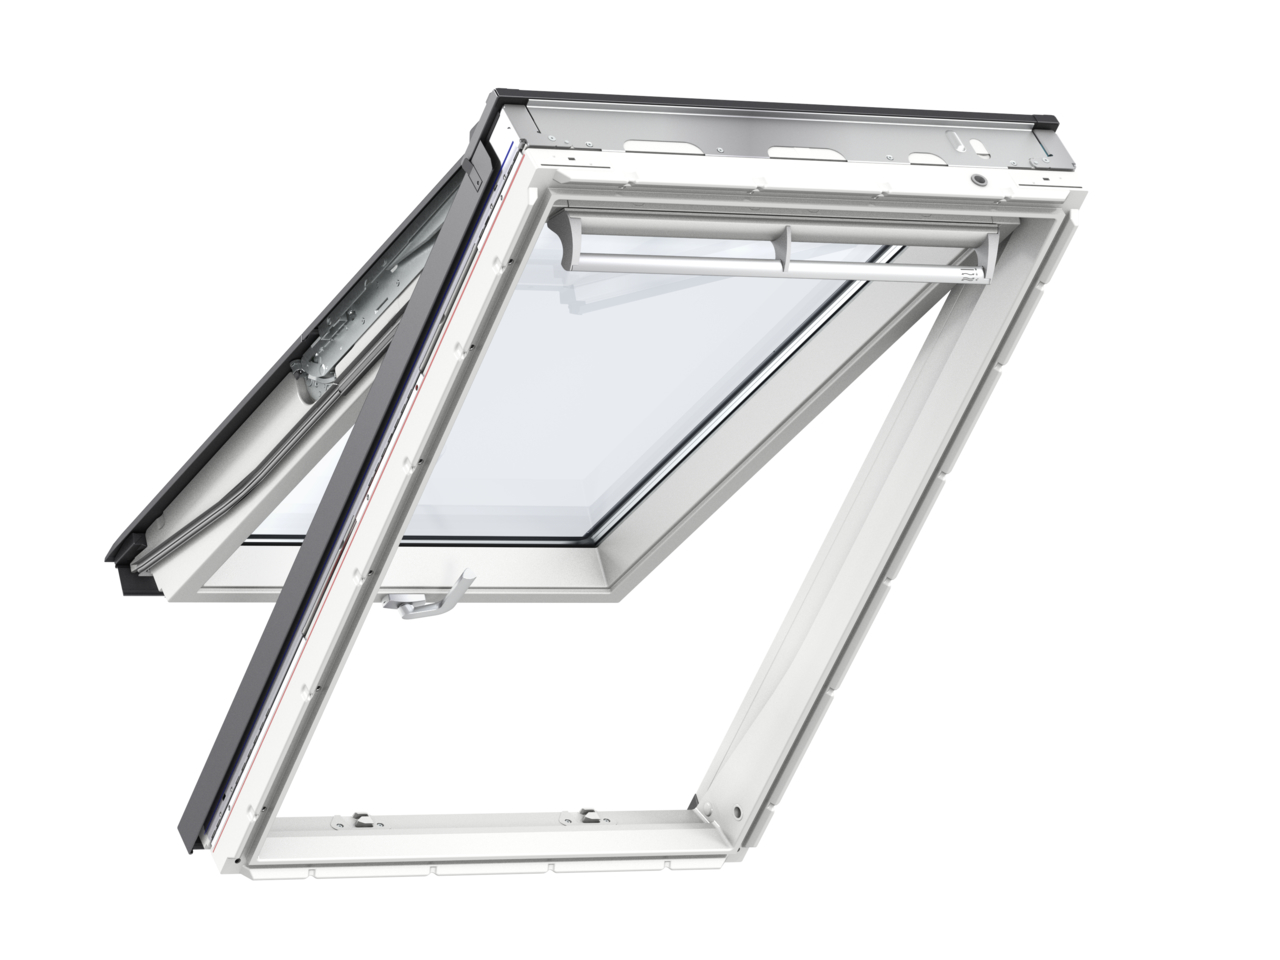 Velux GPU UK08 1340 x 1400mm Top Hung Standard 70Pane Roof Window - White Polyurethane